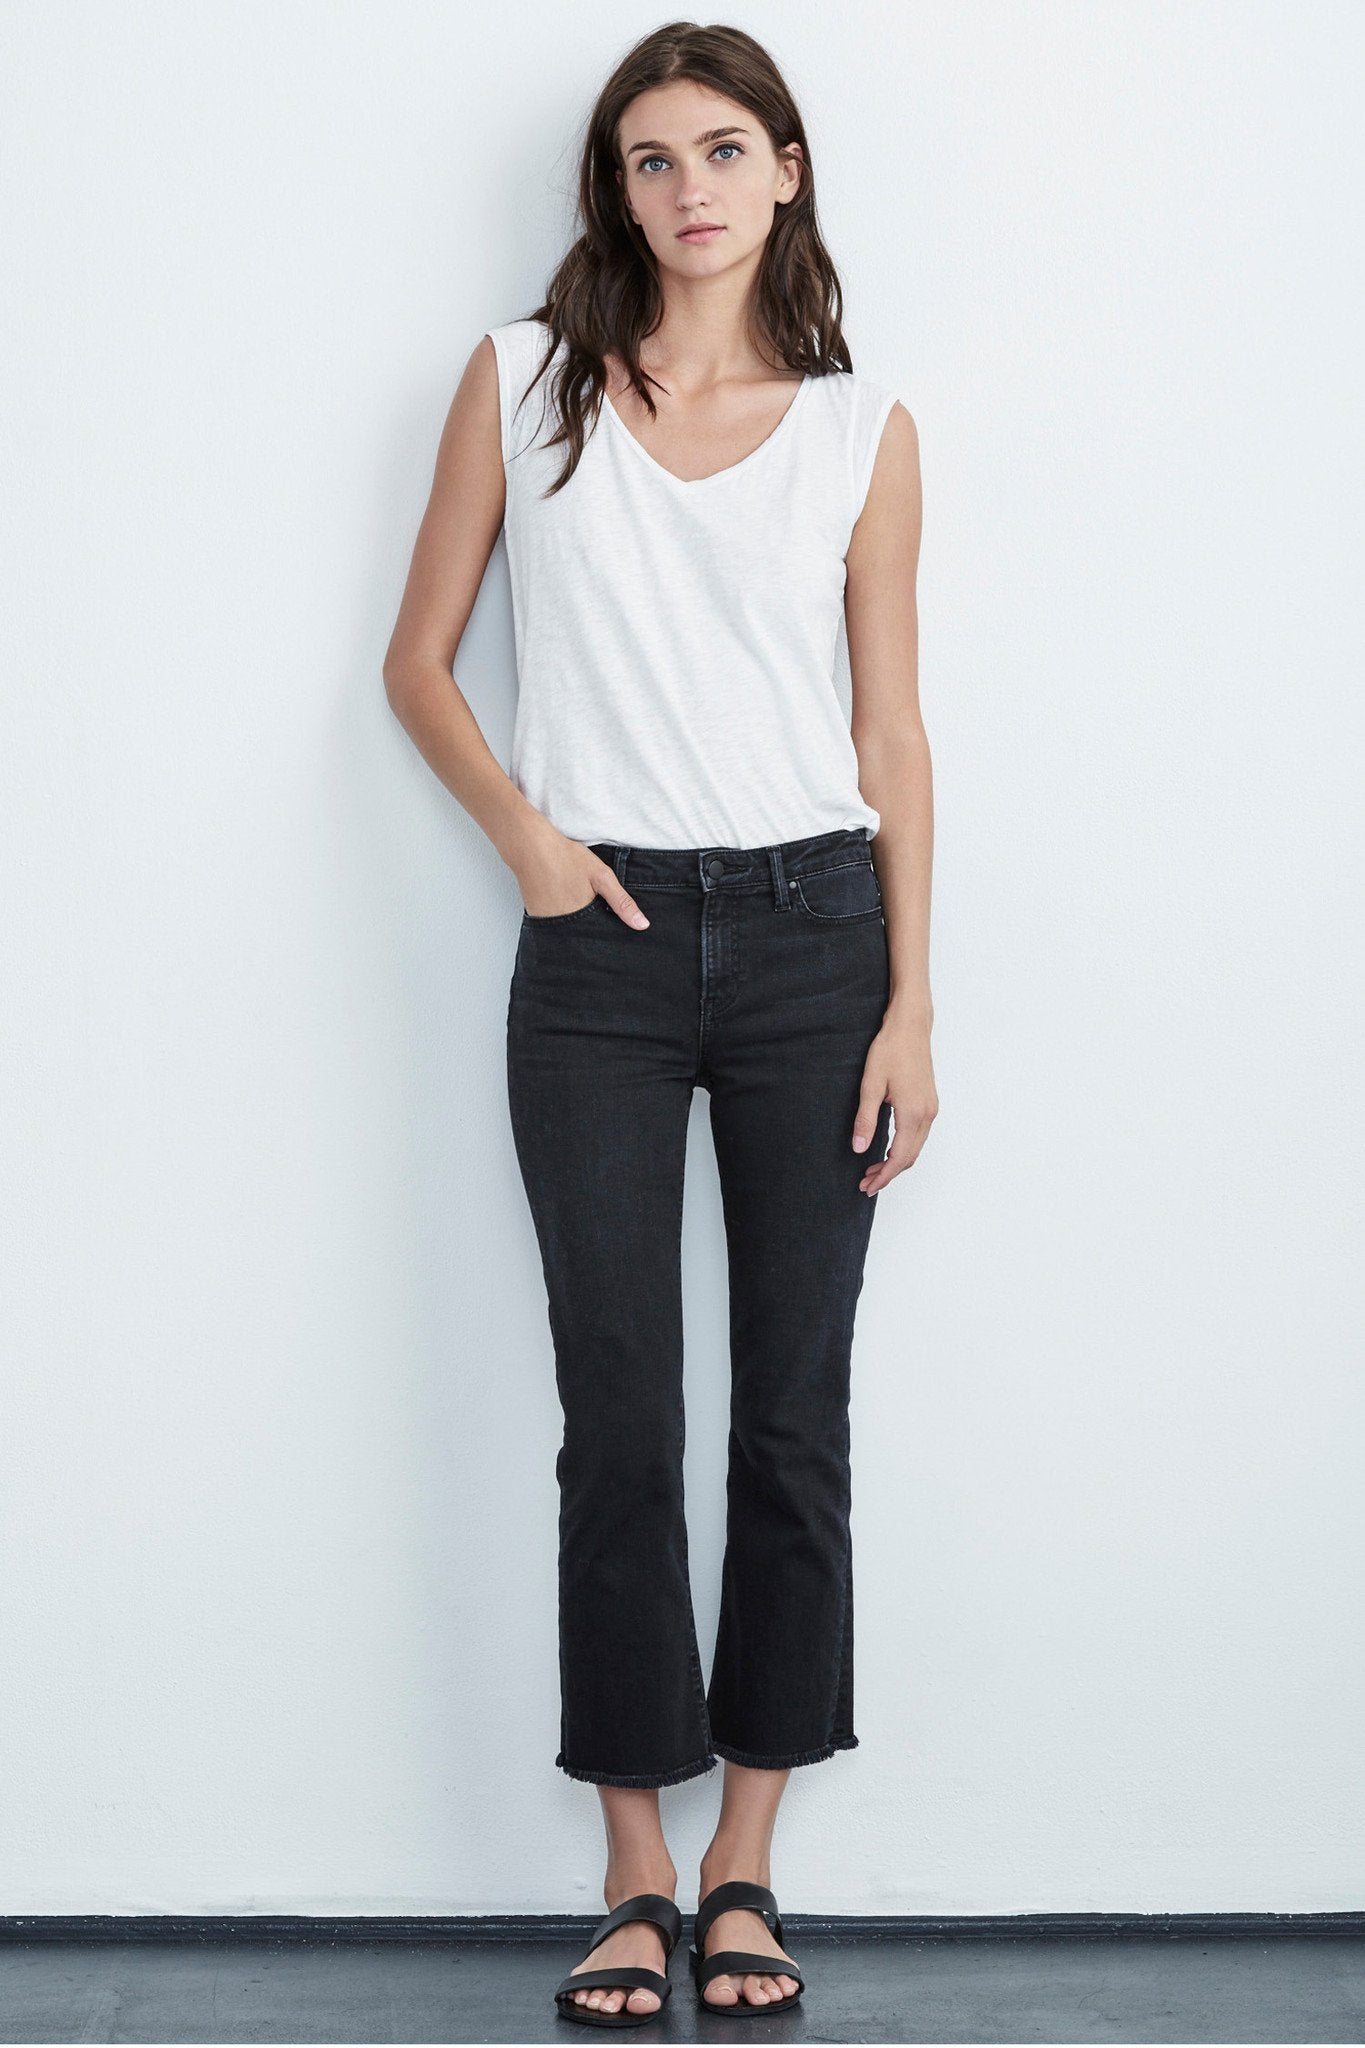 TWIGGY HIGH RISE CROP JEAN IN COAL